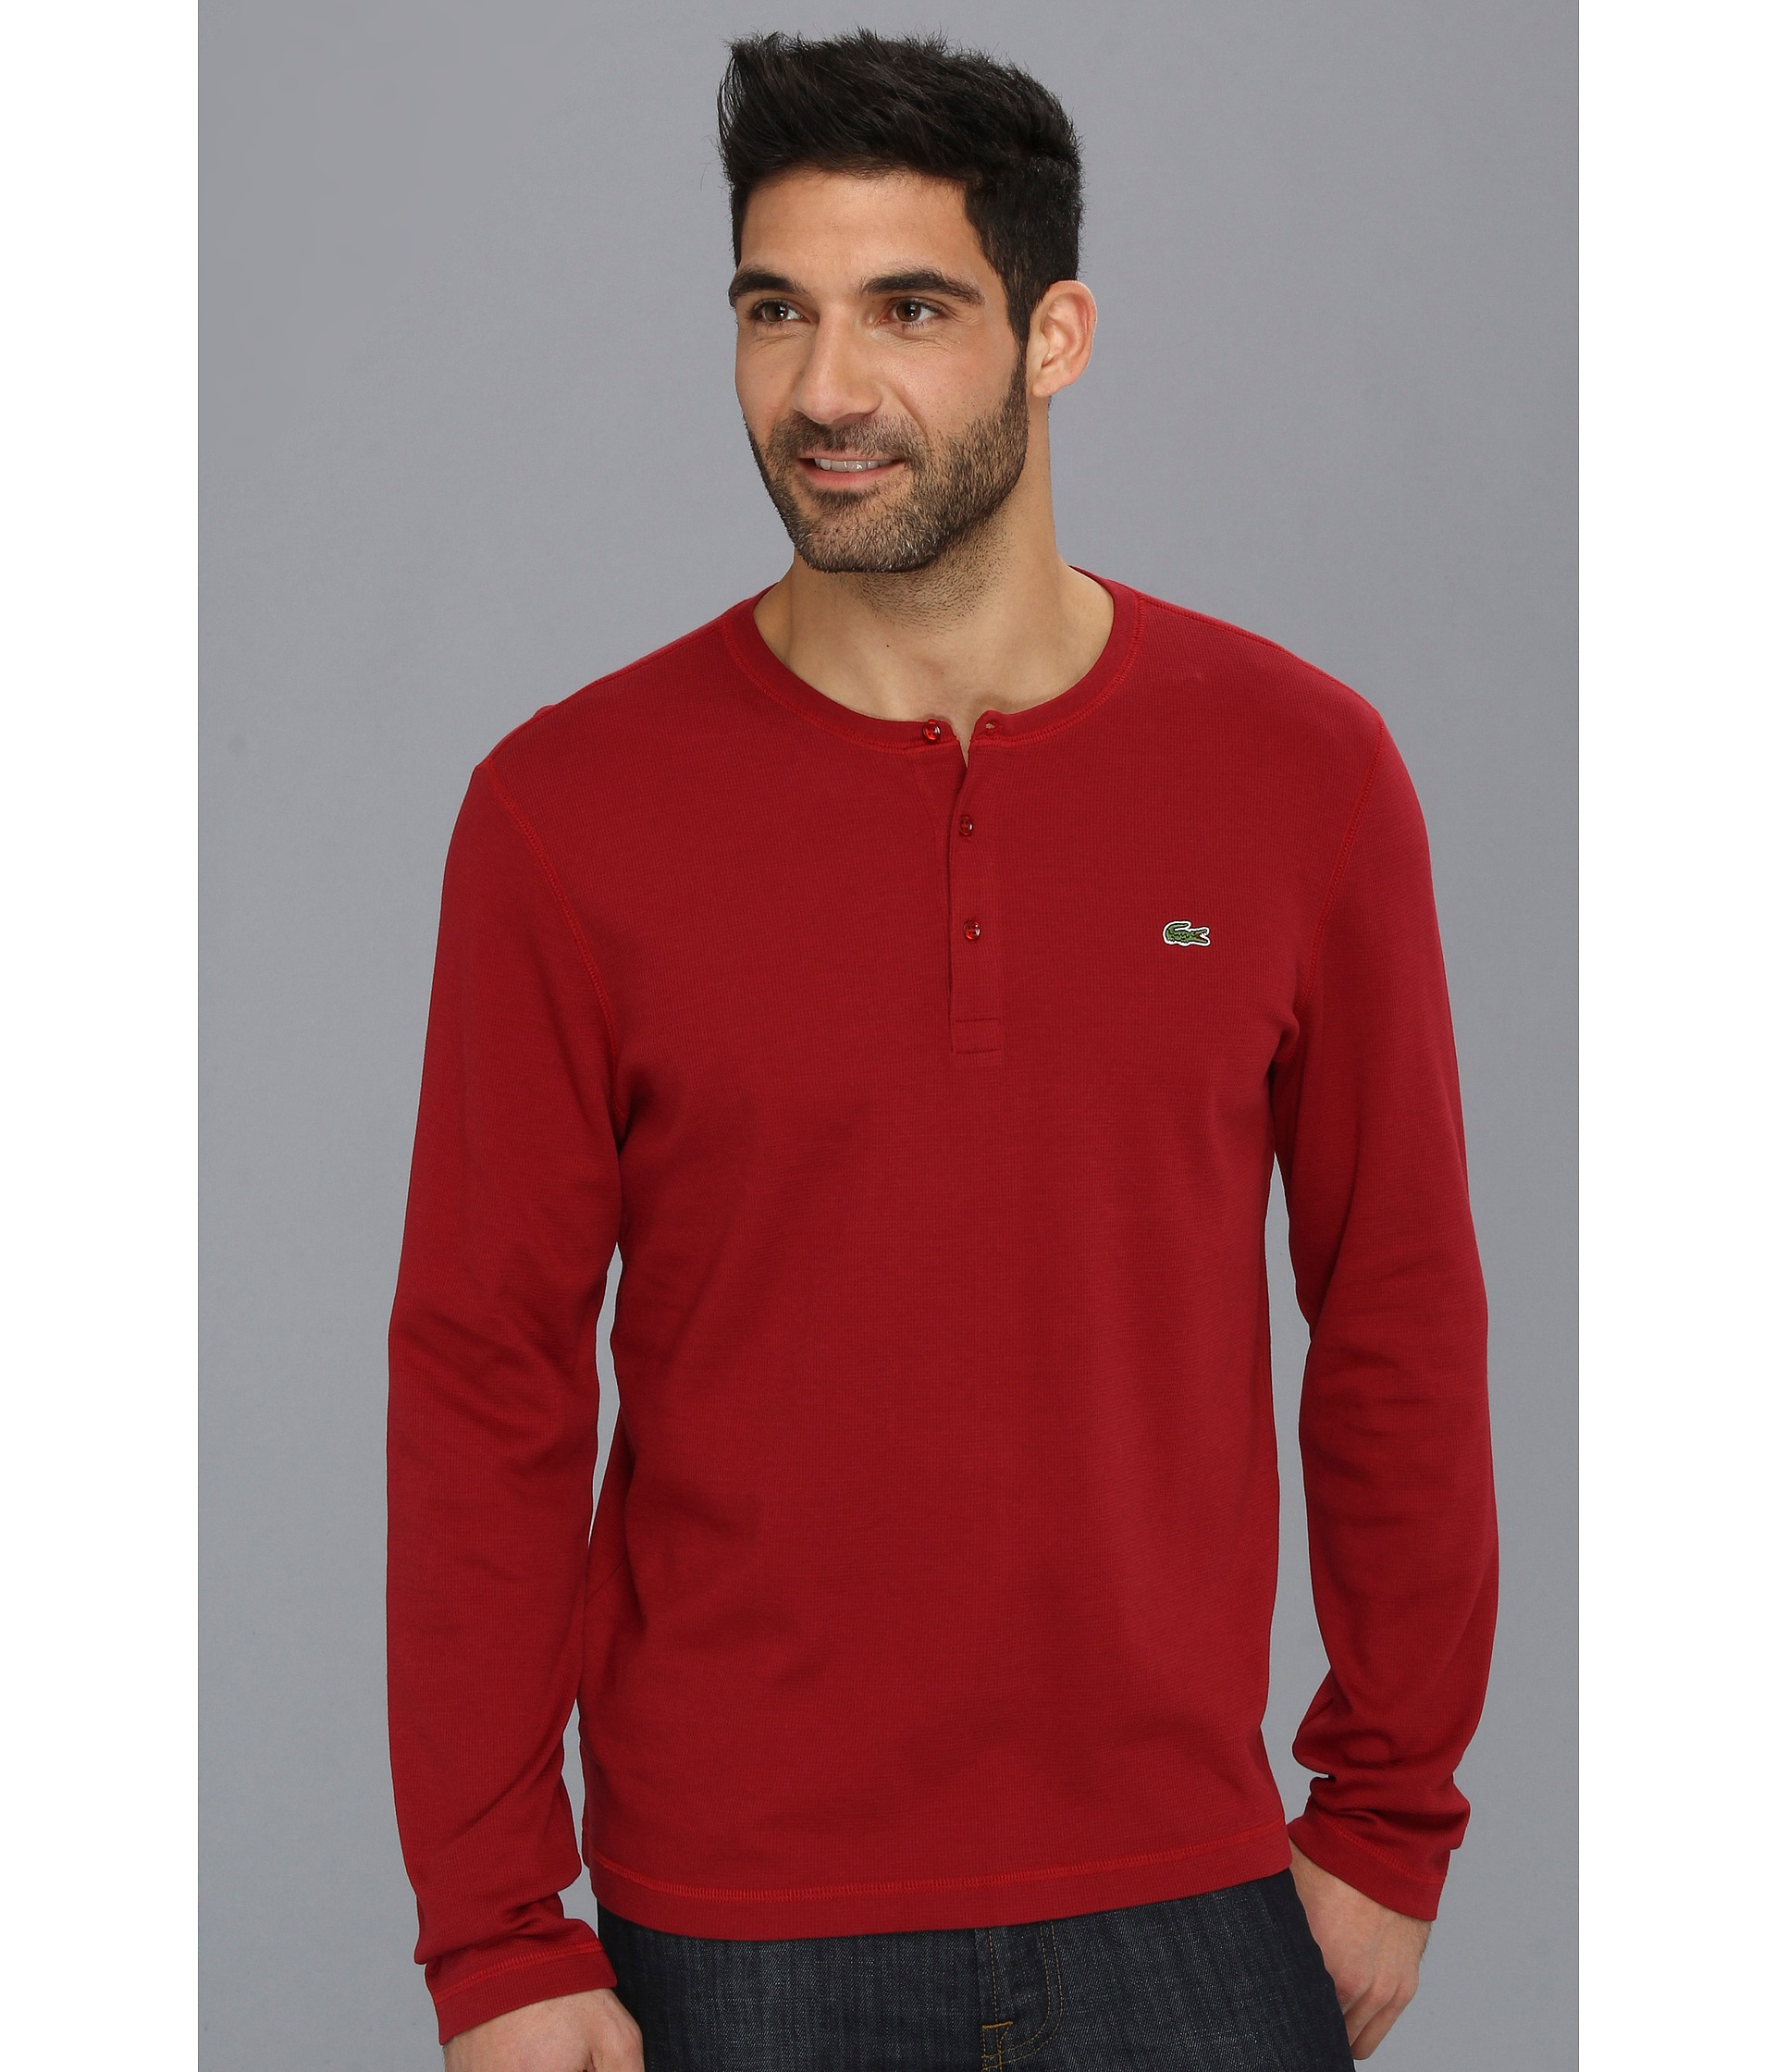 Lyst - Lacoste Long Sleeve Waffle Henley Tshirt in Red for Men